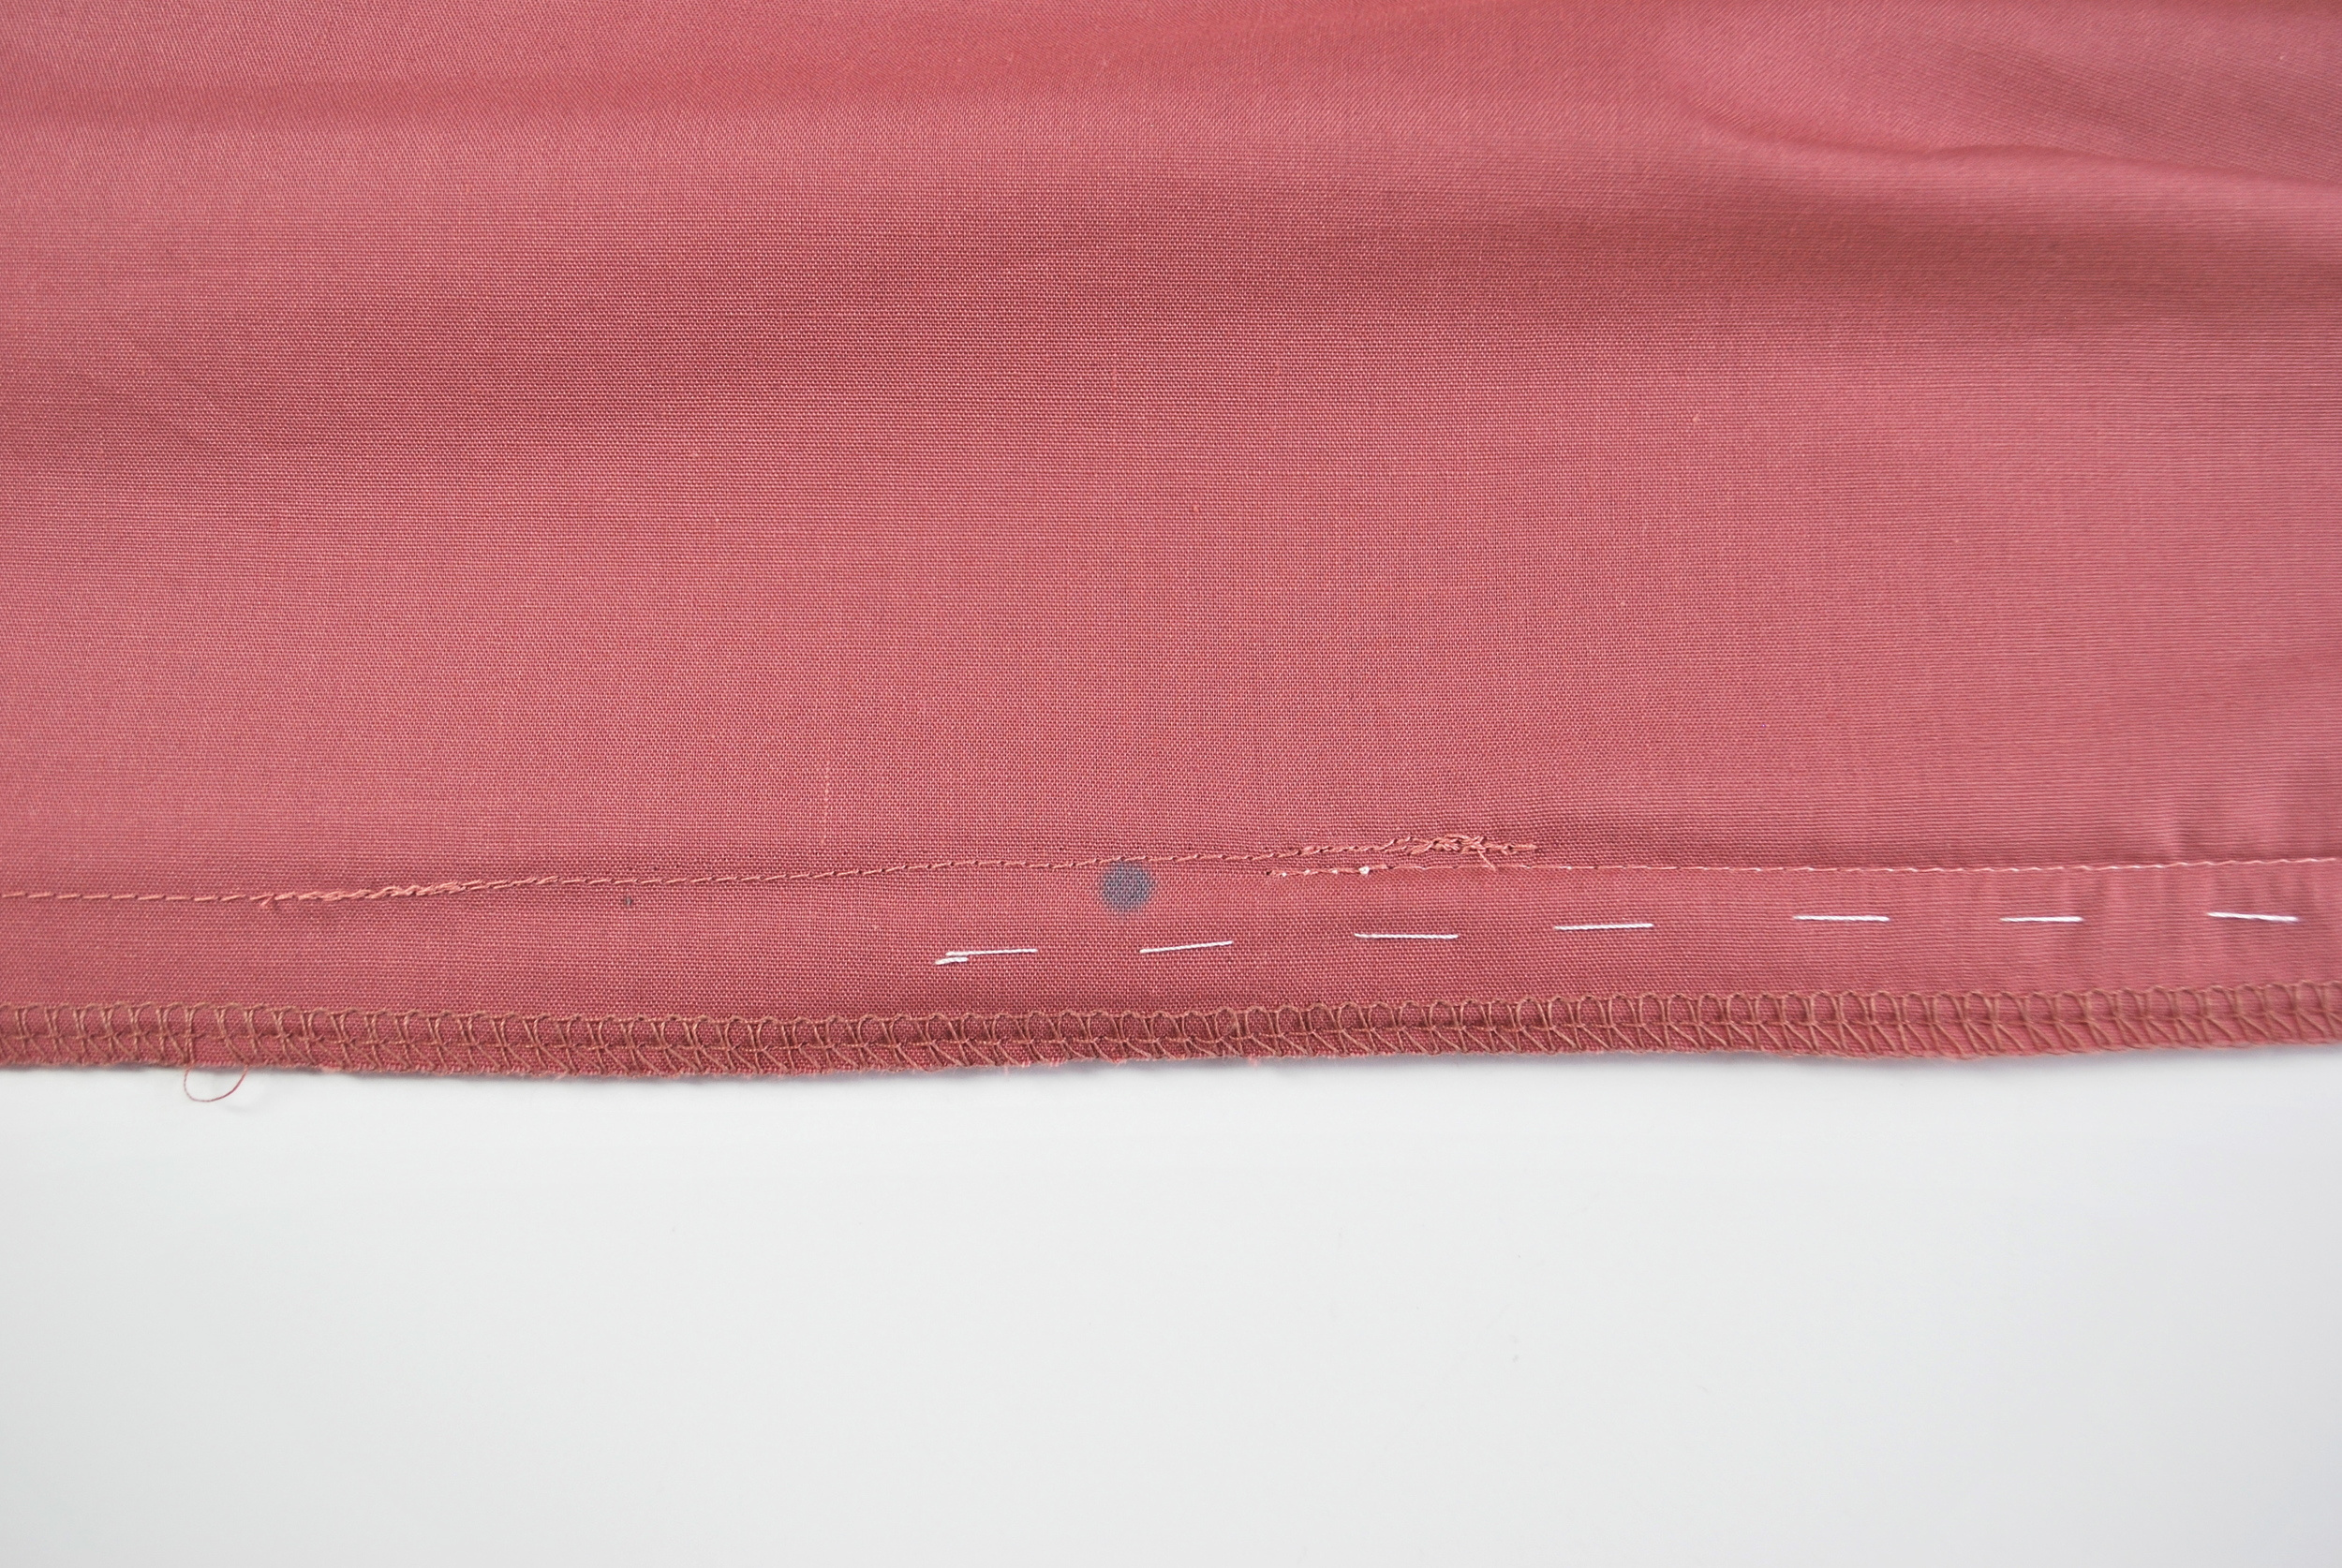 STEP 11c - The back seam seam stitch overlaps with the zipper stitch.